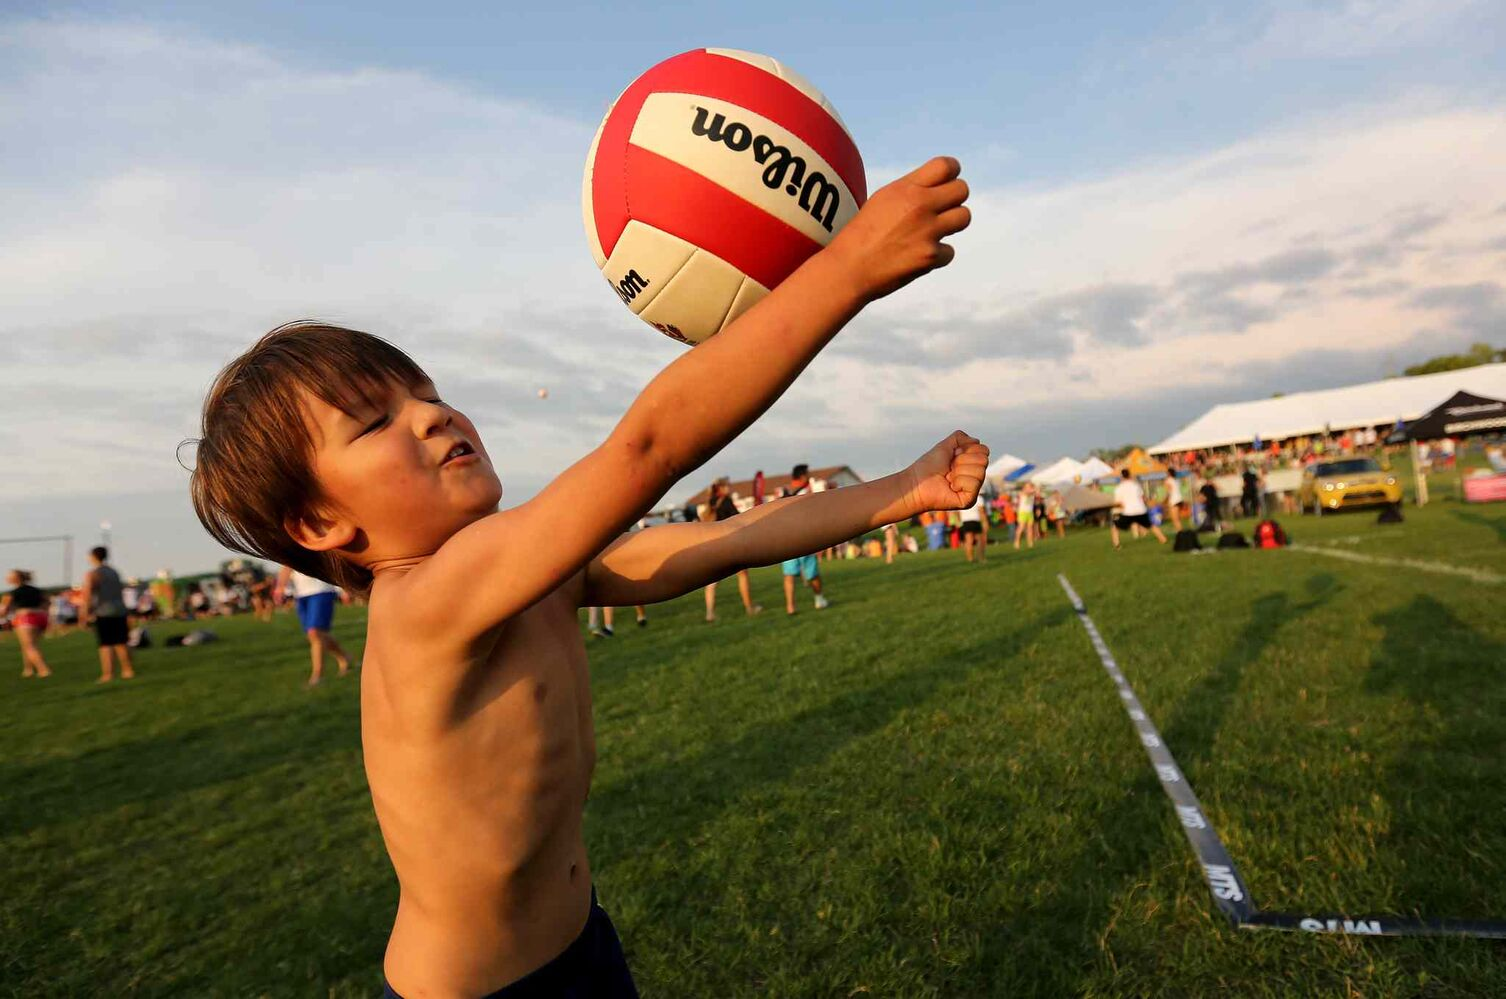 Alexander Schinkel, 3, playing with a ball at the Super-Spike volleyball tournament at Maple Grove Rugby Park, Friday, July 18, 2014.